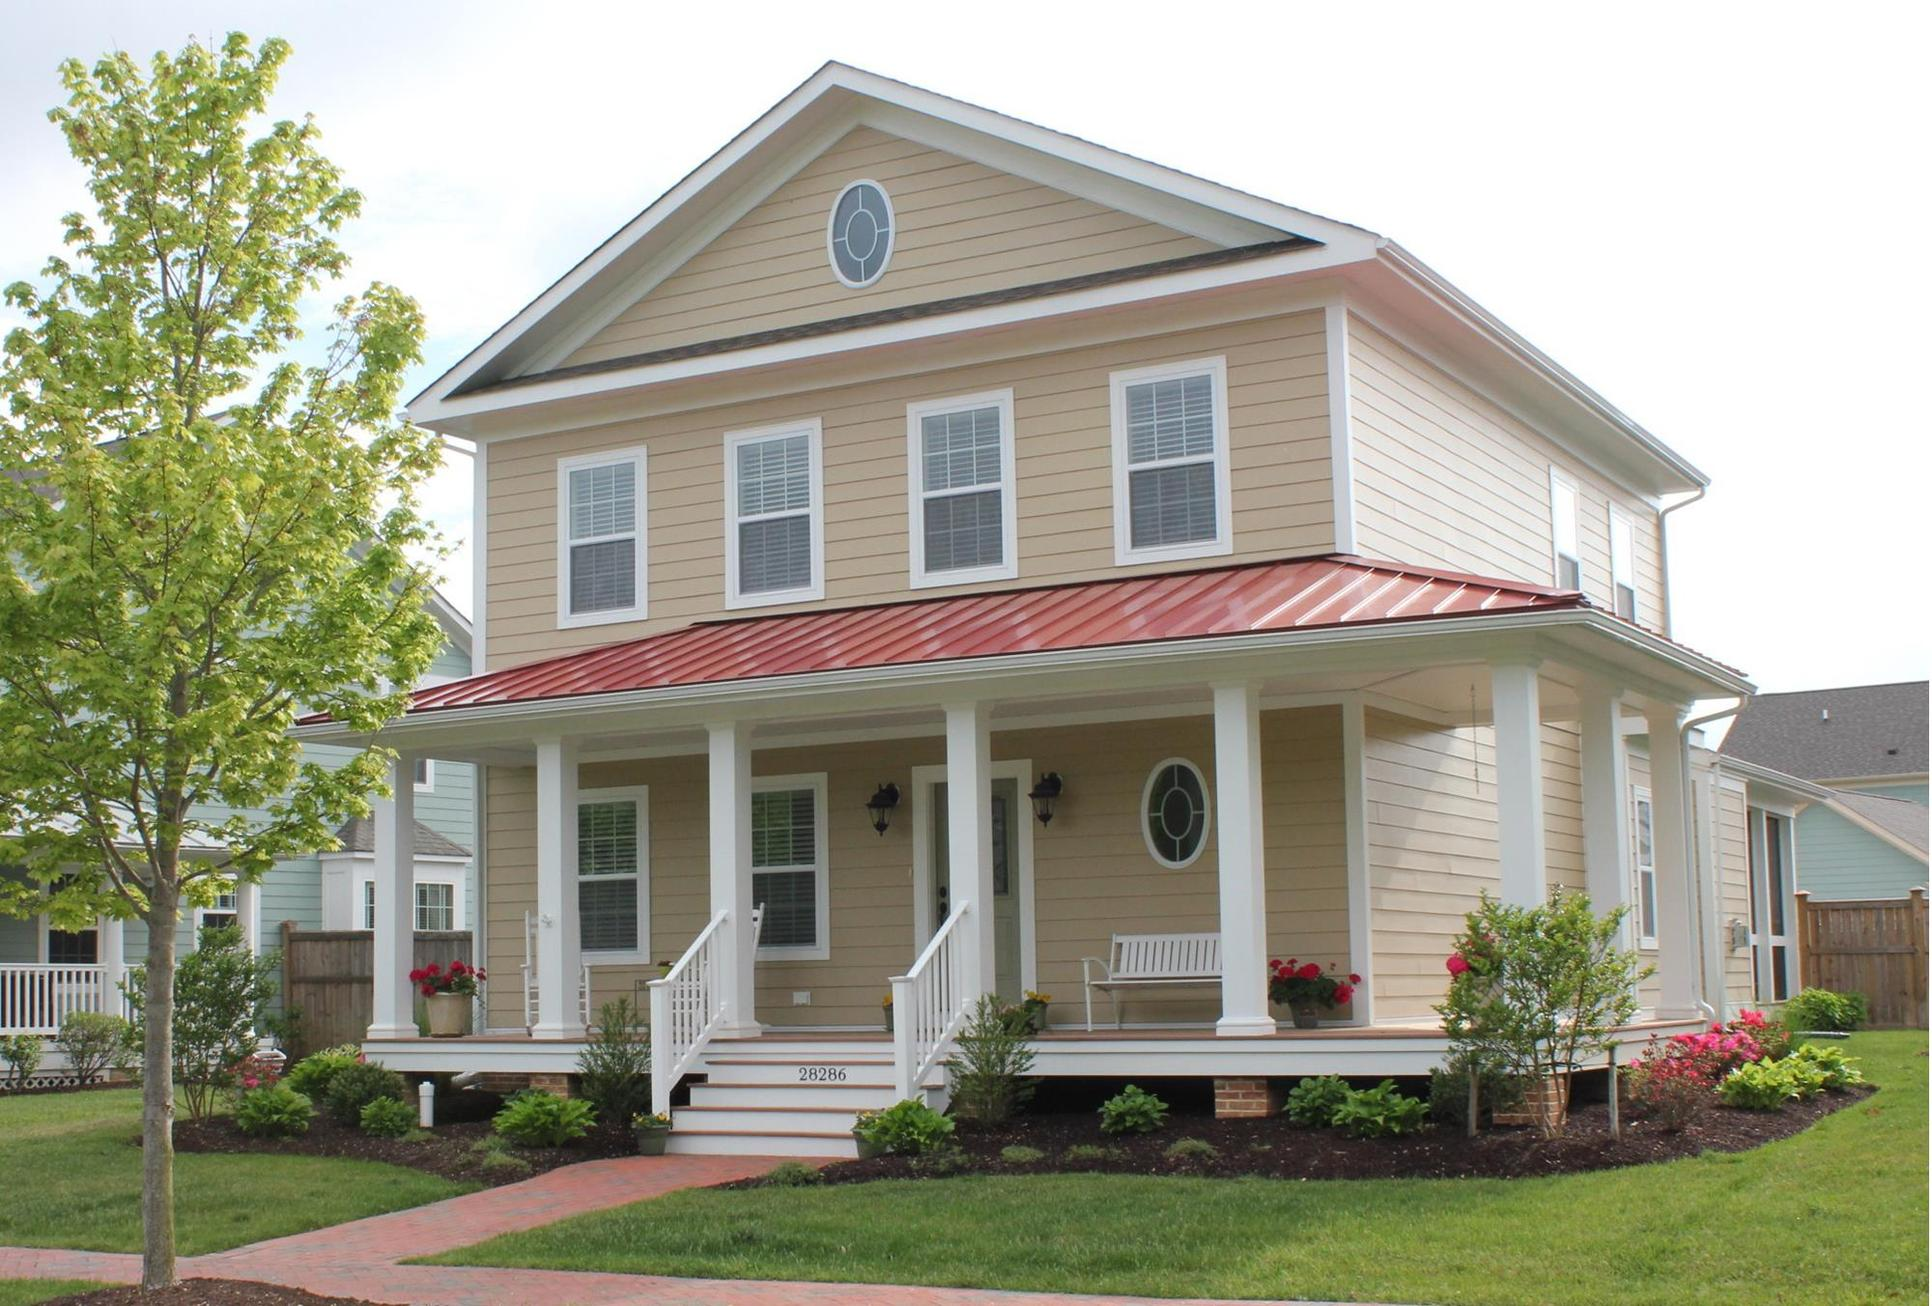 Front Elevation with Turn Gable Roof and Wraparound Porch